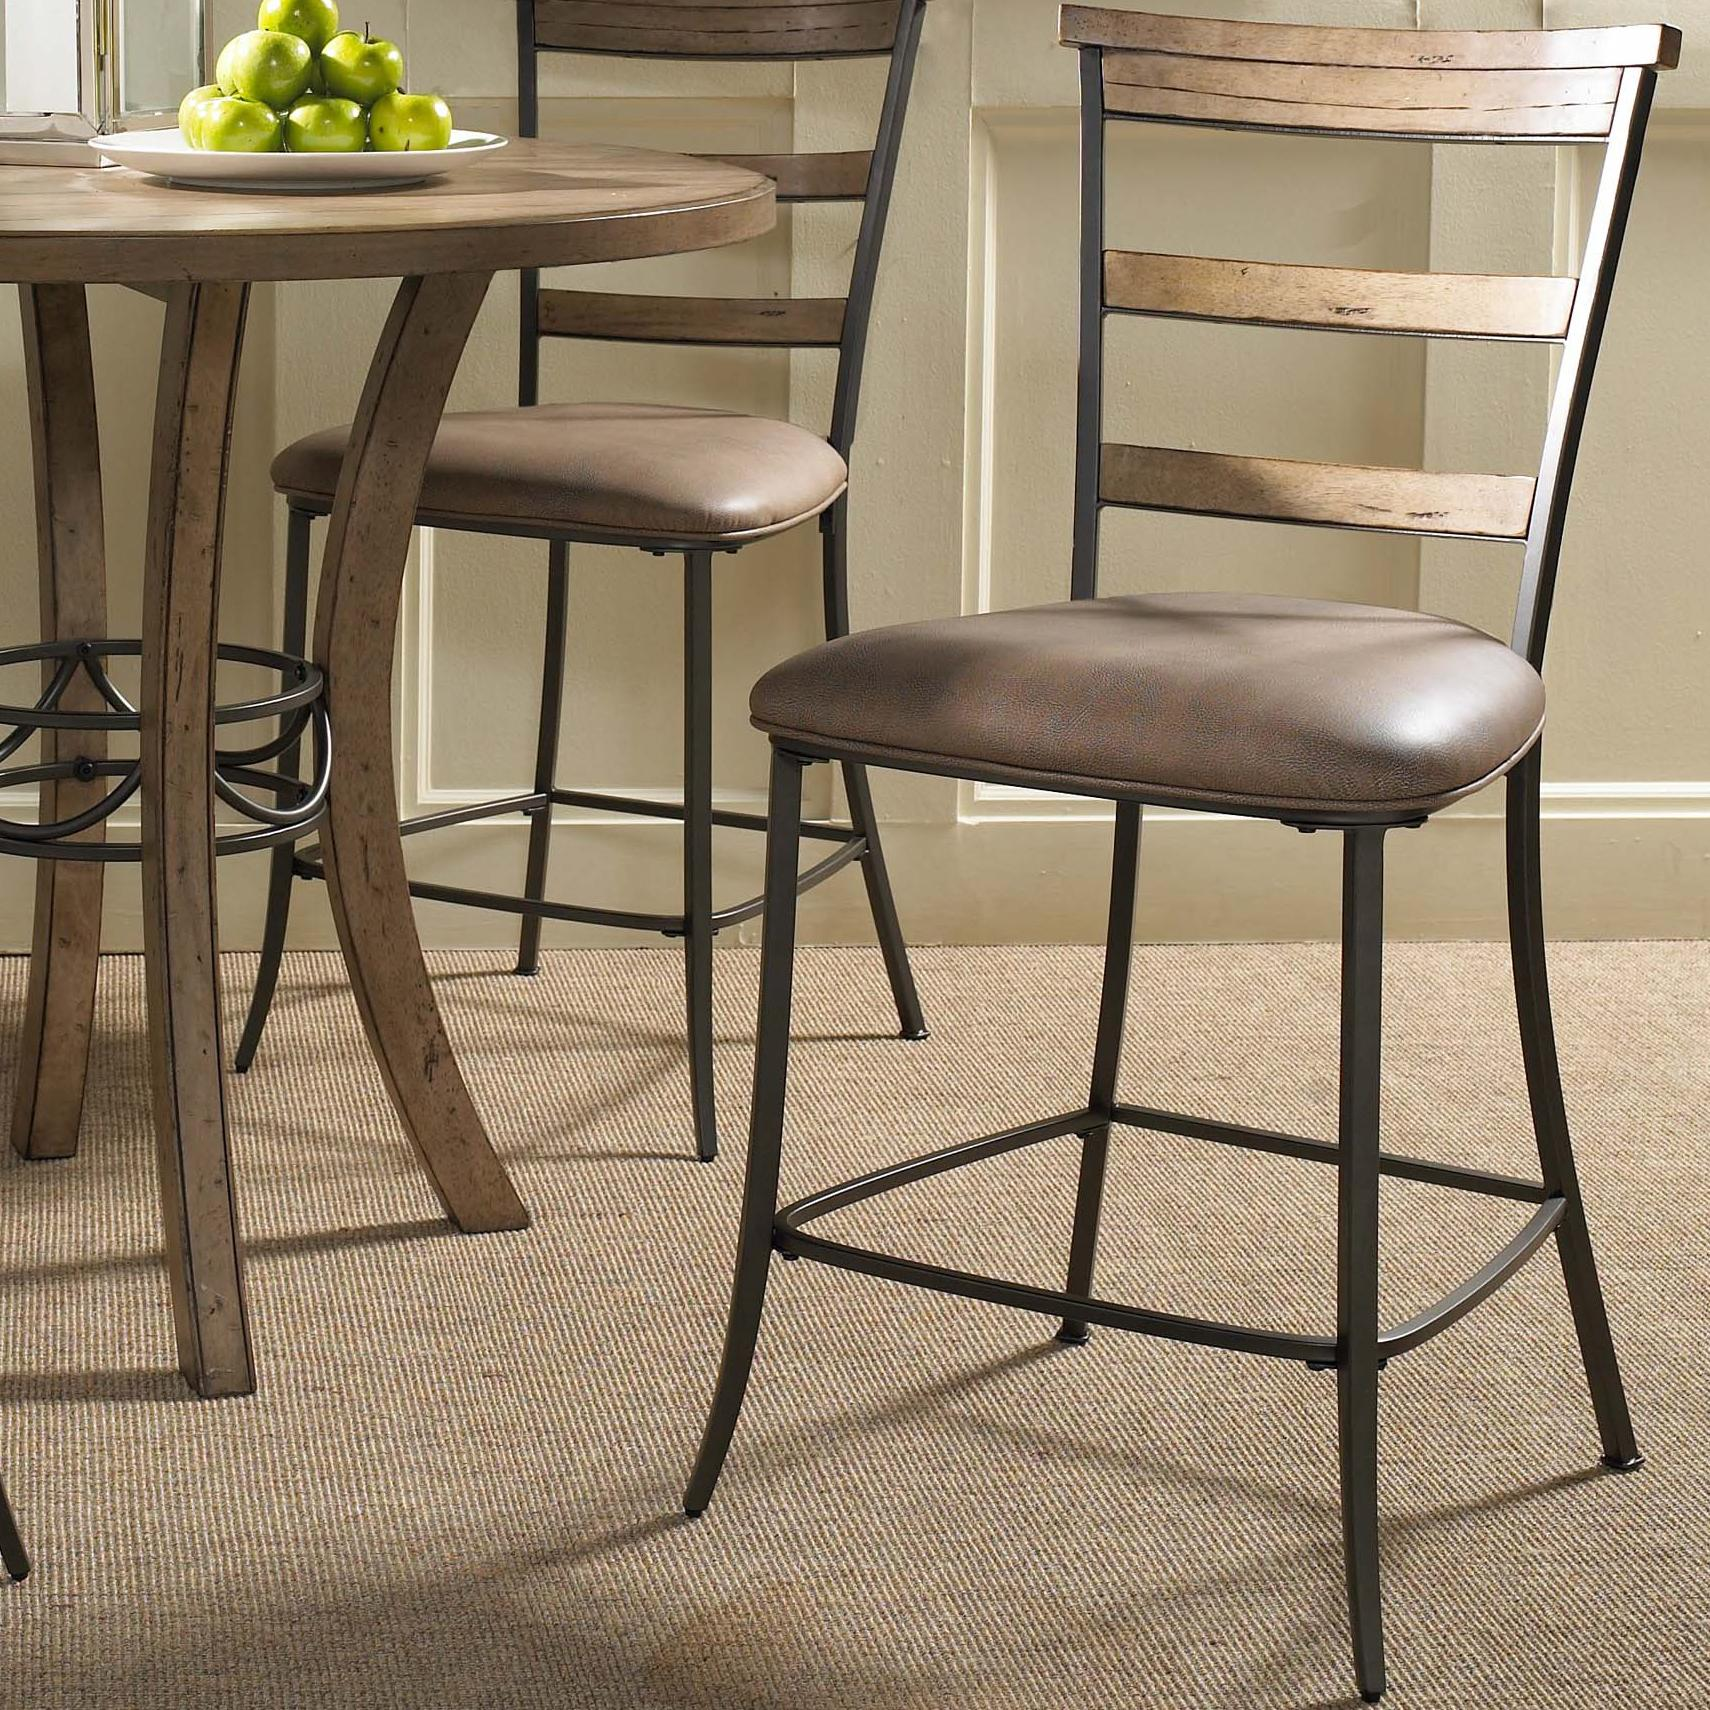 Charleston Ladder Back Non-Swivel Stool by Hillsdale at Gill Brothers Furniture